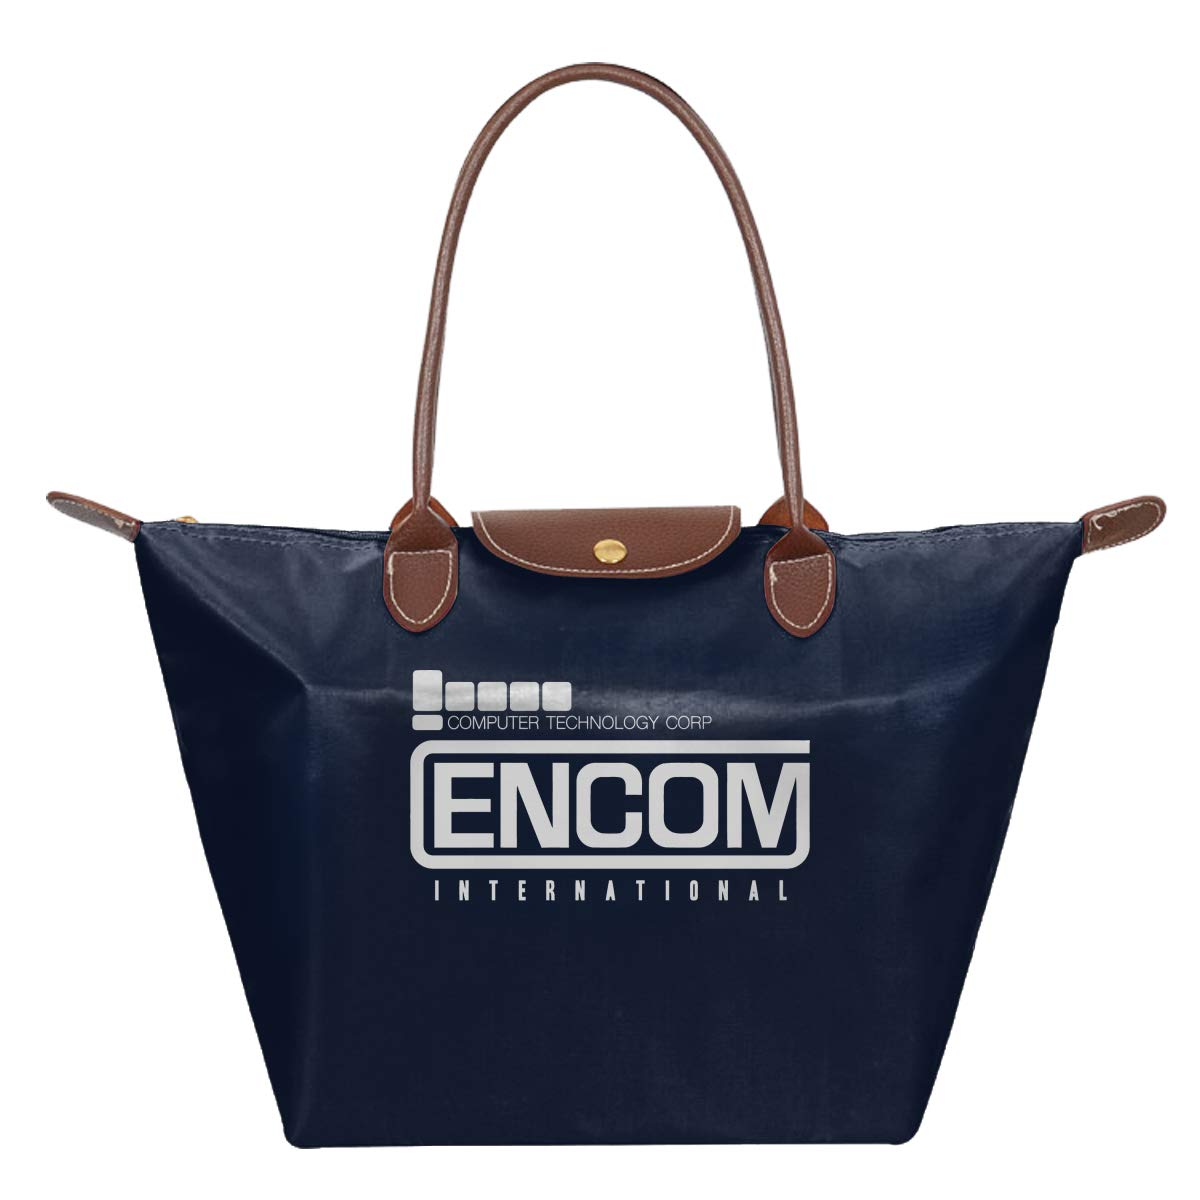 ENCOM International Inspired By Tron Flynns Retro Arcade Waterproof Leather Folded Messenger Nylon Bag Travel Tote Hopping Folding School Handbags